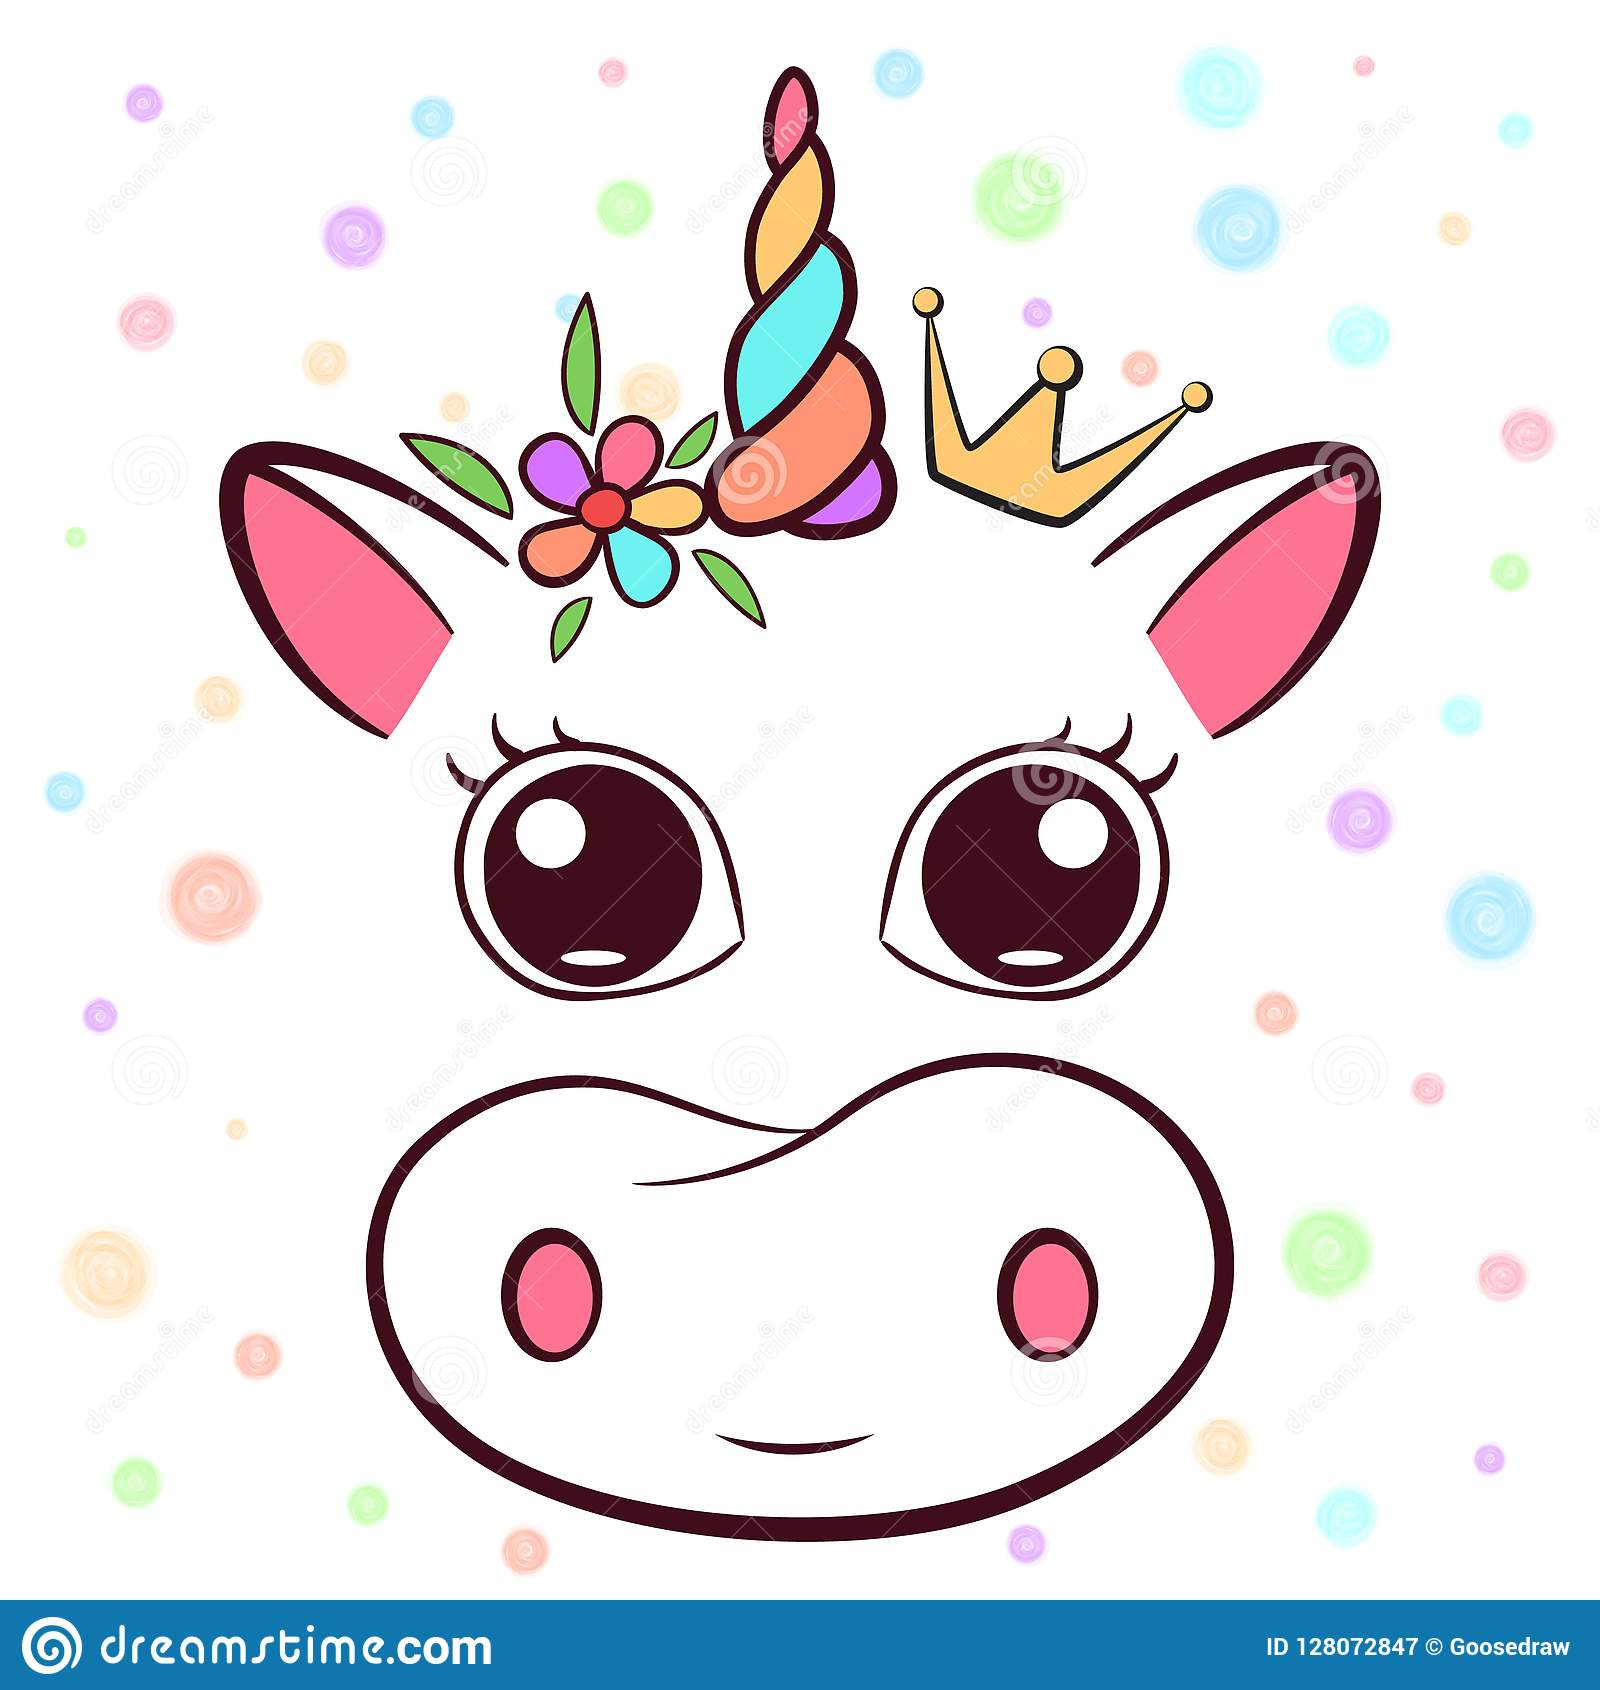 Cute Cow Cowicorn Characters Idea For Print T Shirt Stock Vector